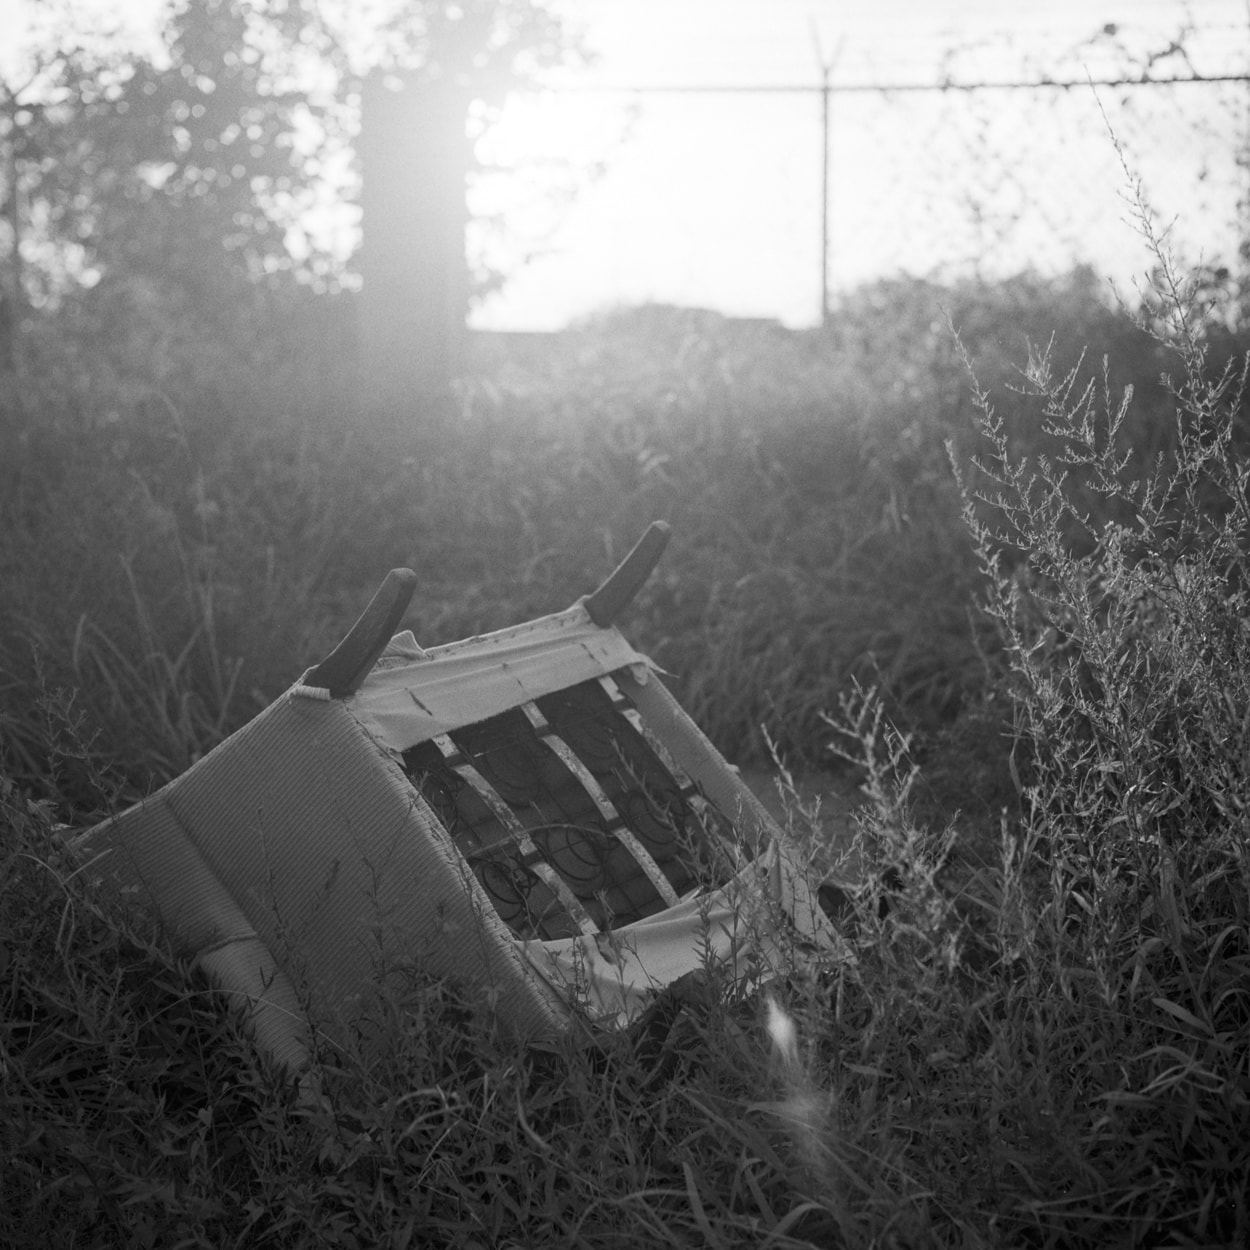 A discard chair in grass on the side of the road